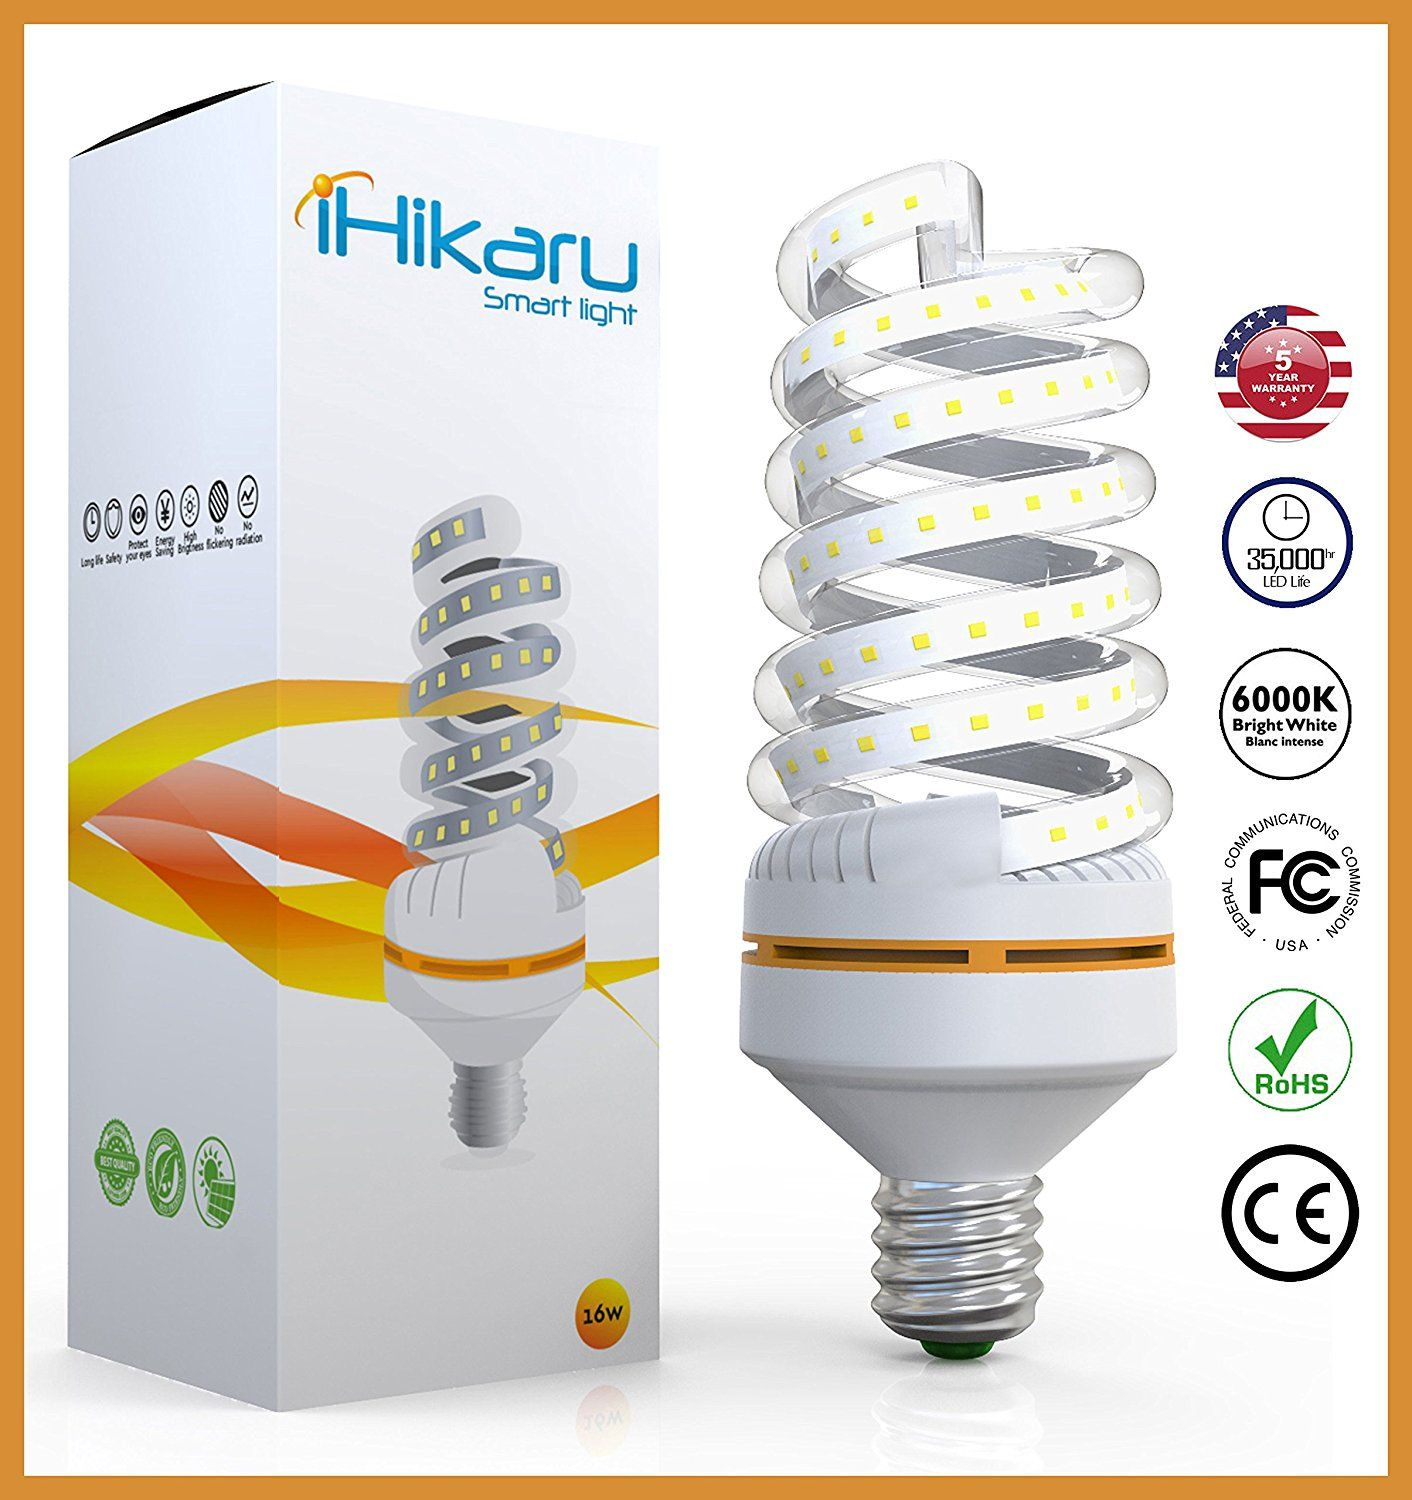 Ihikaru Led Light Bulb New Spiral Corn 90 Energy Saving 30 Watt Equivalent 250 Watt Daylight White Up To 6000k No Radiati Led Light Bulb Led Lights Light Bulb